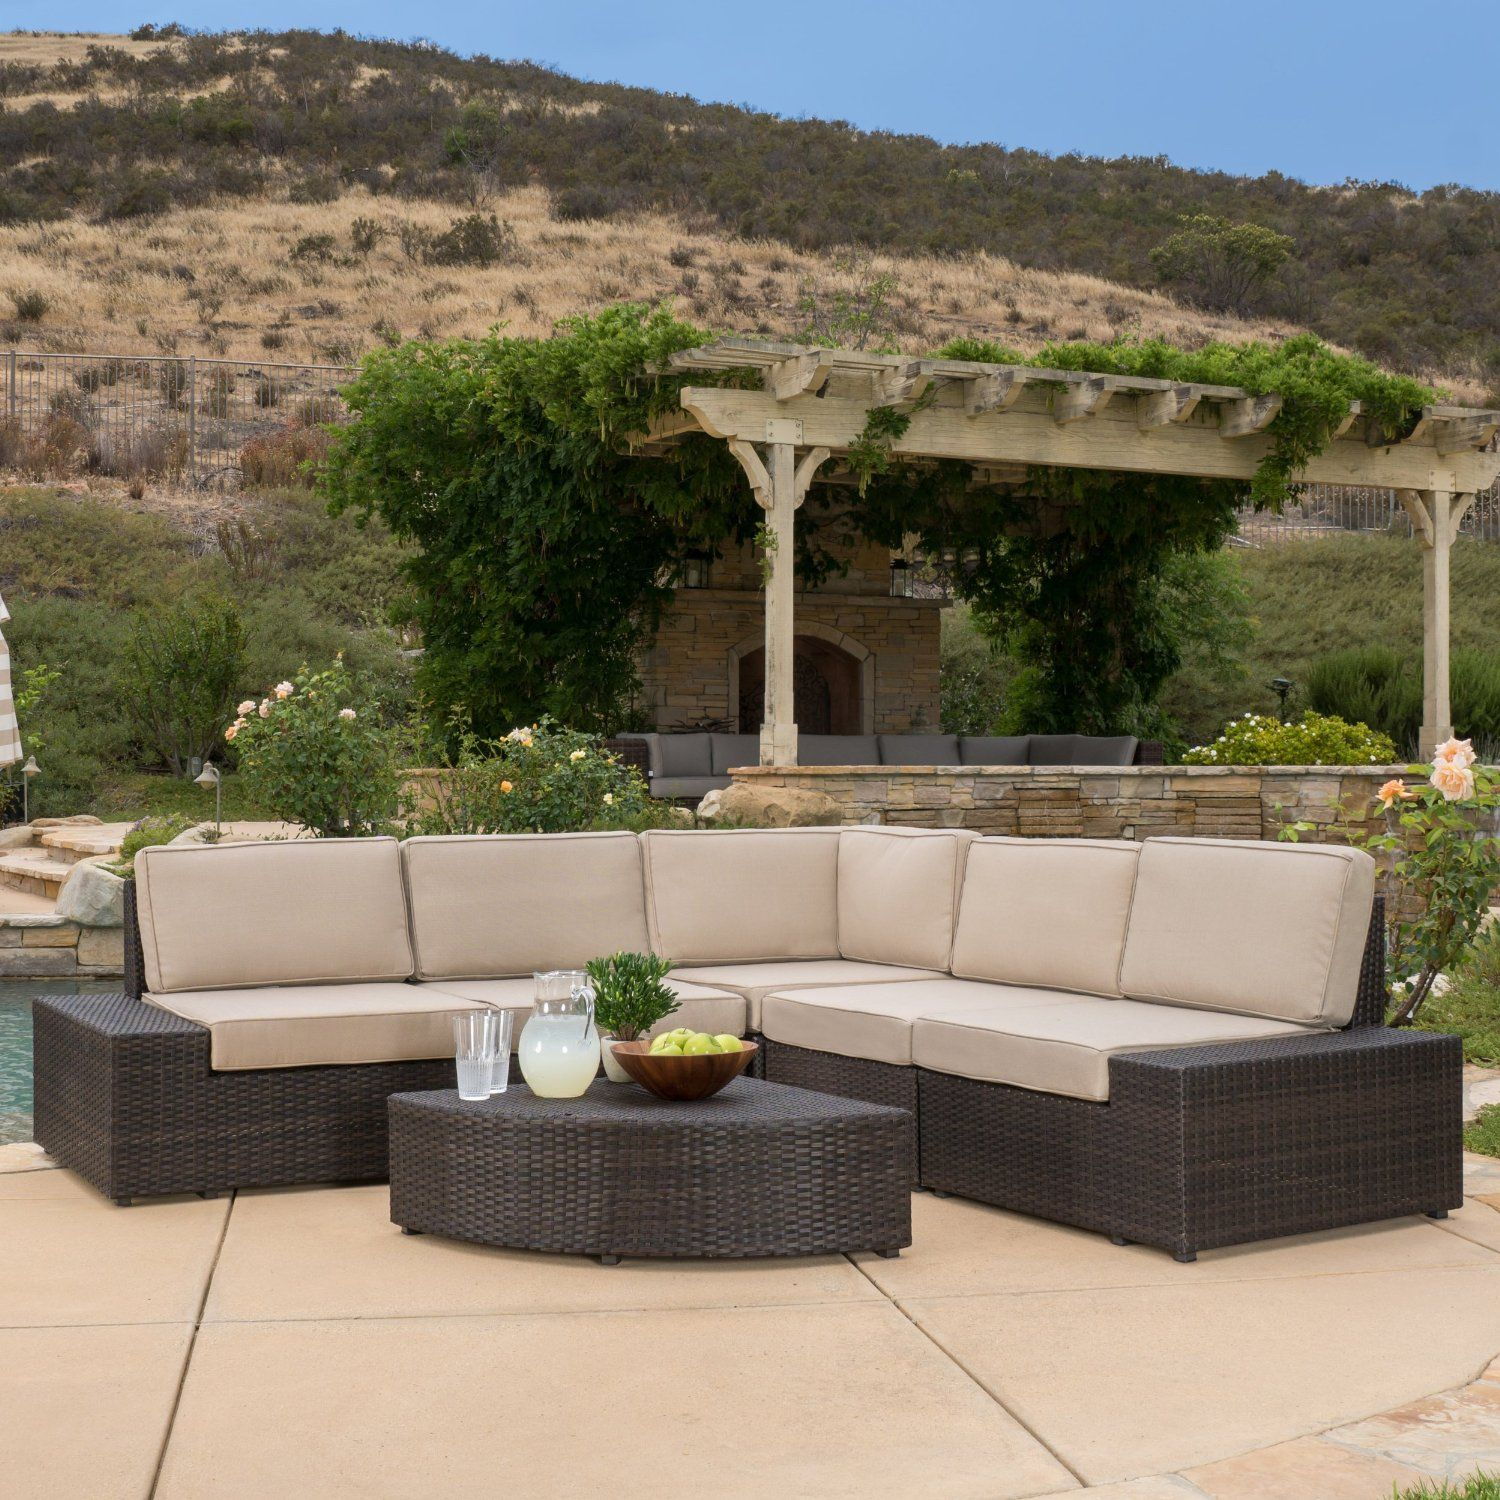 amazoncom reddington outdoor brown wicker sectional seating sofa set with cushions outdoor